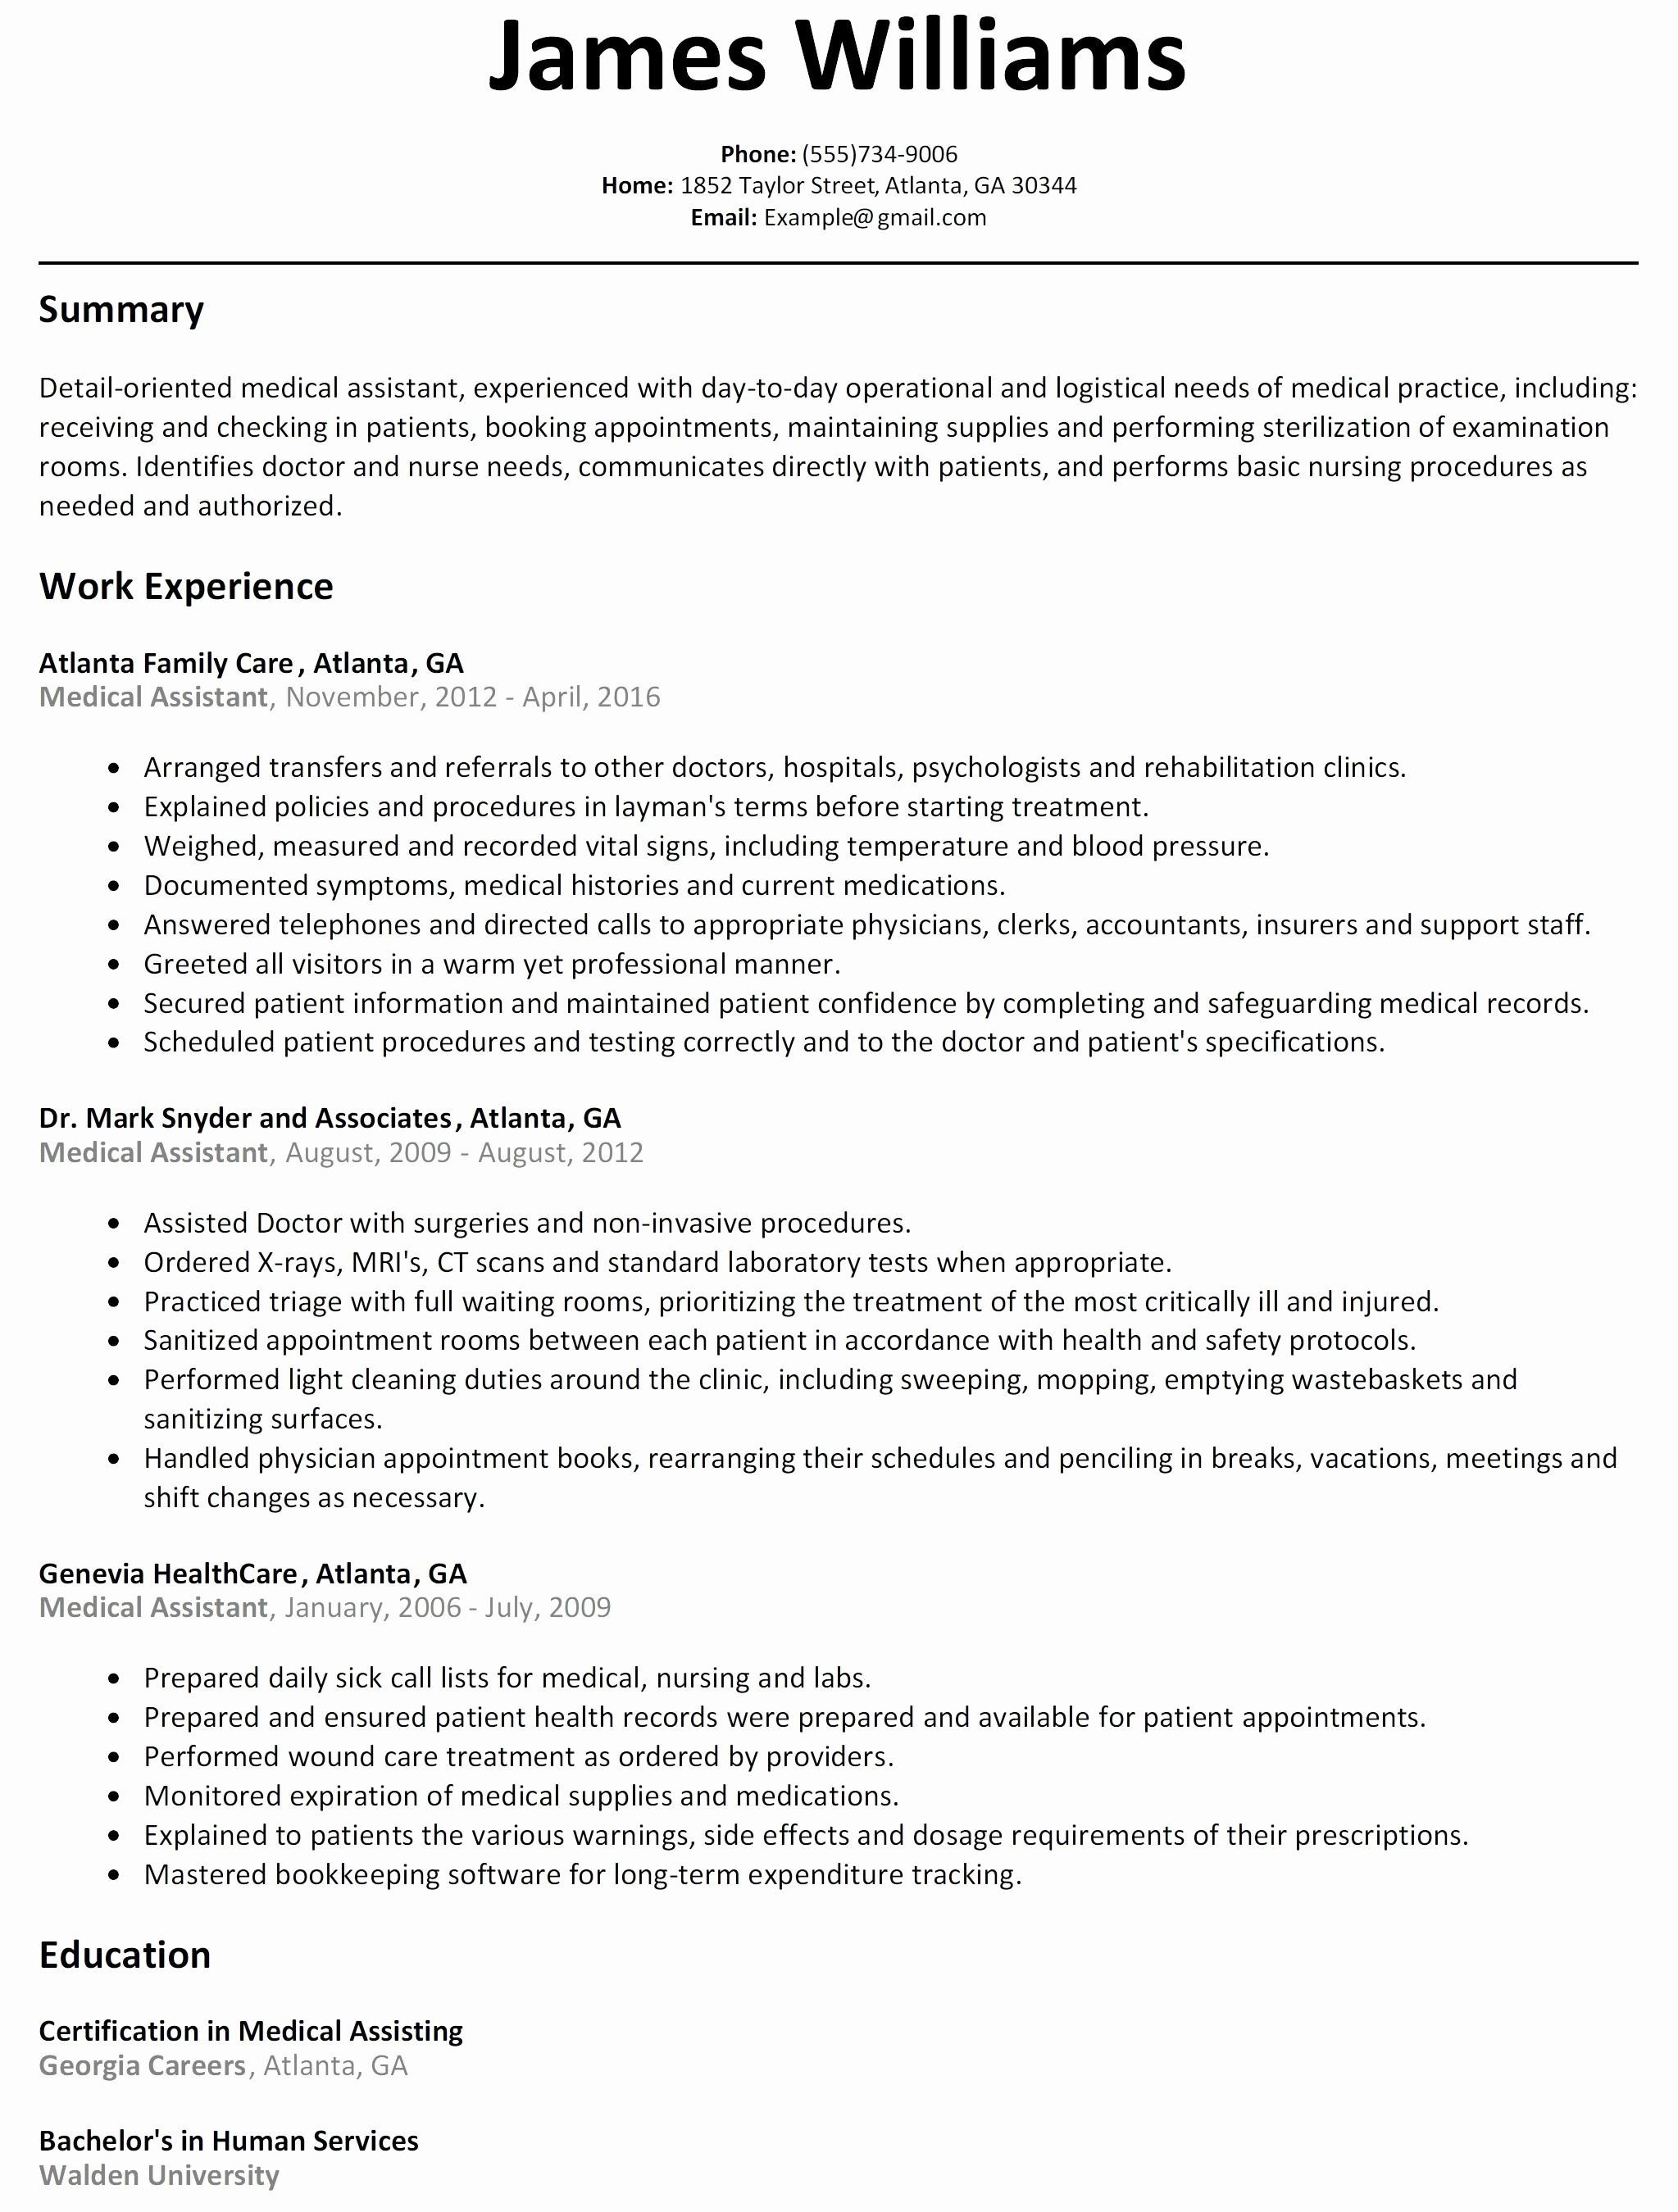 Caregiver Resume Summary - Caregiver Summary for Resume